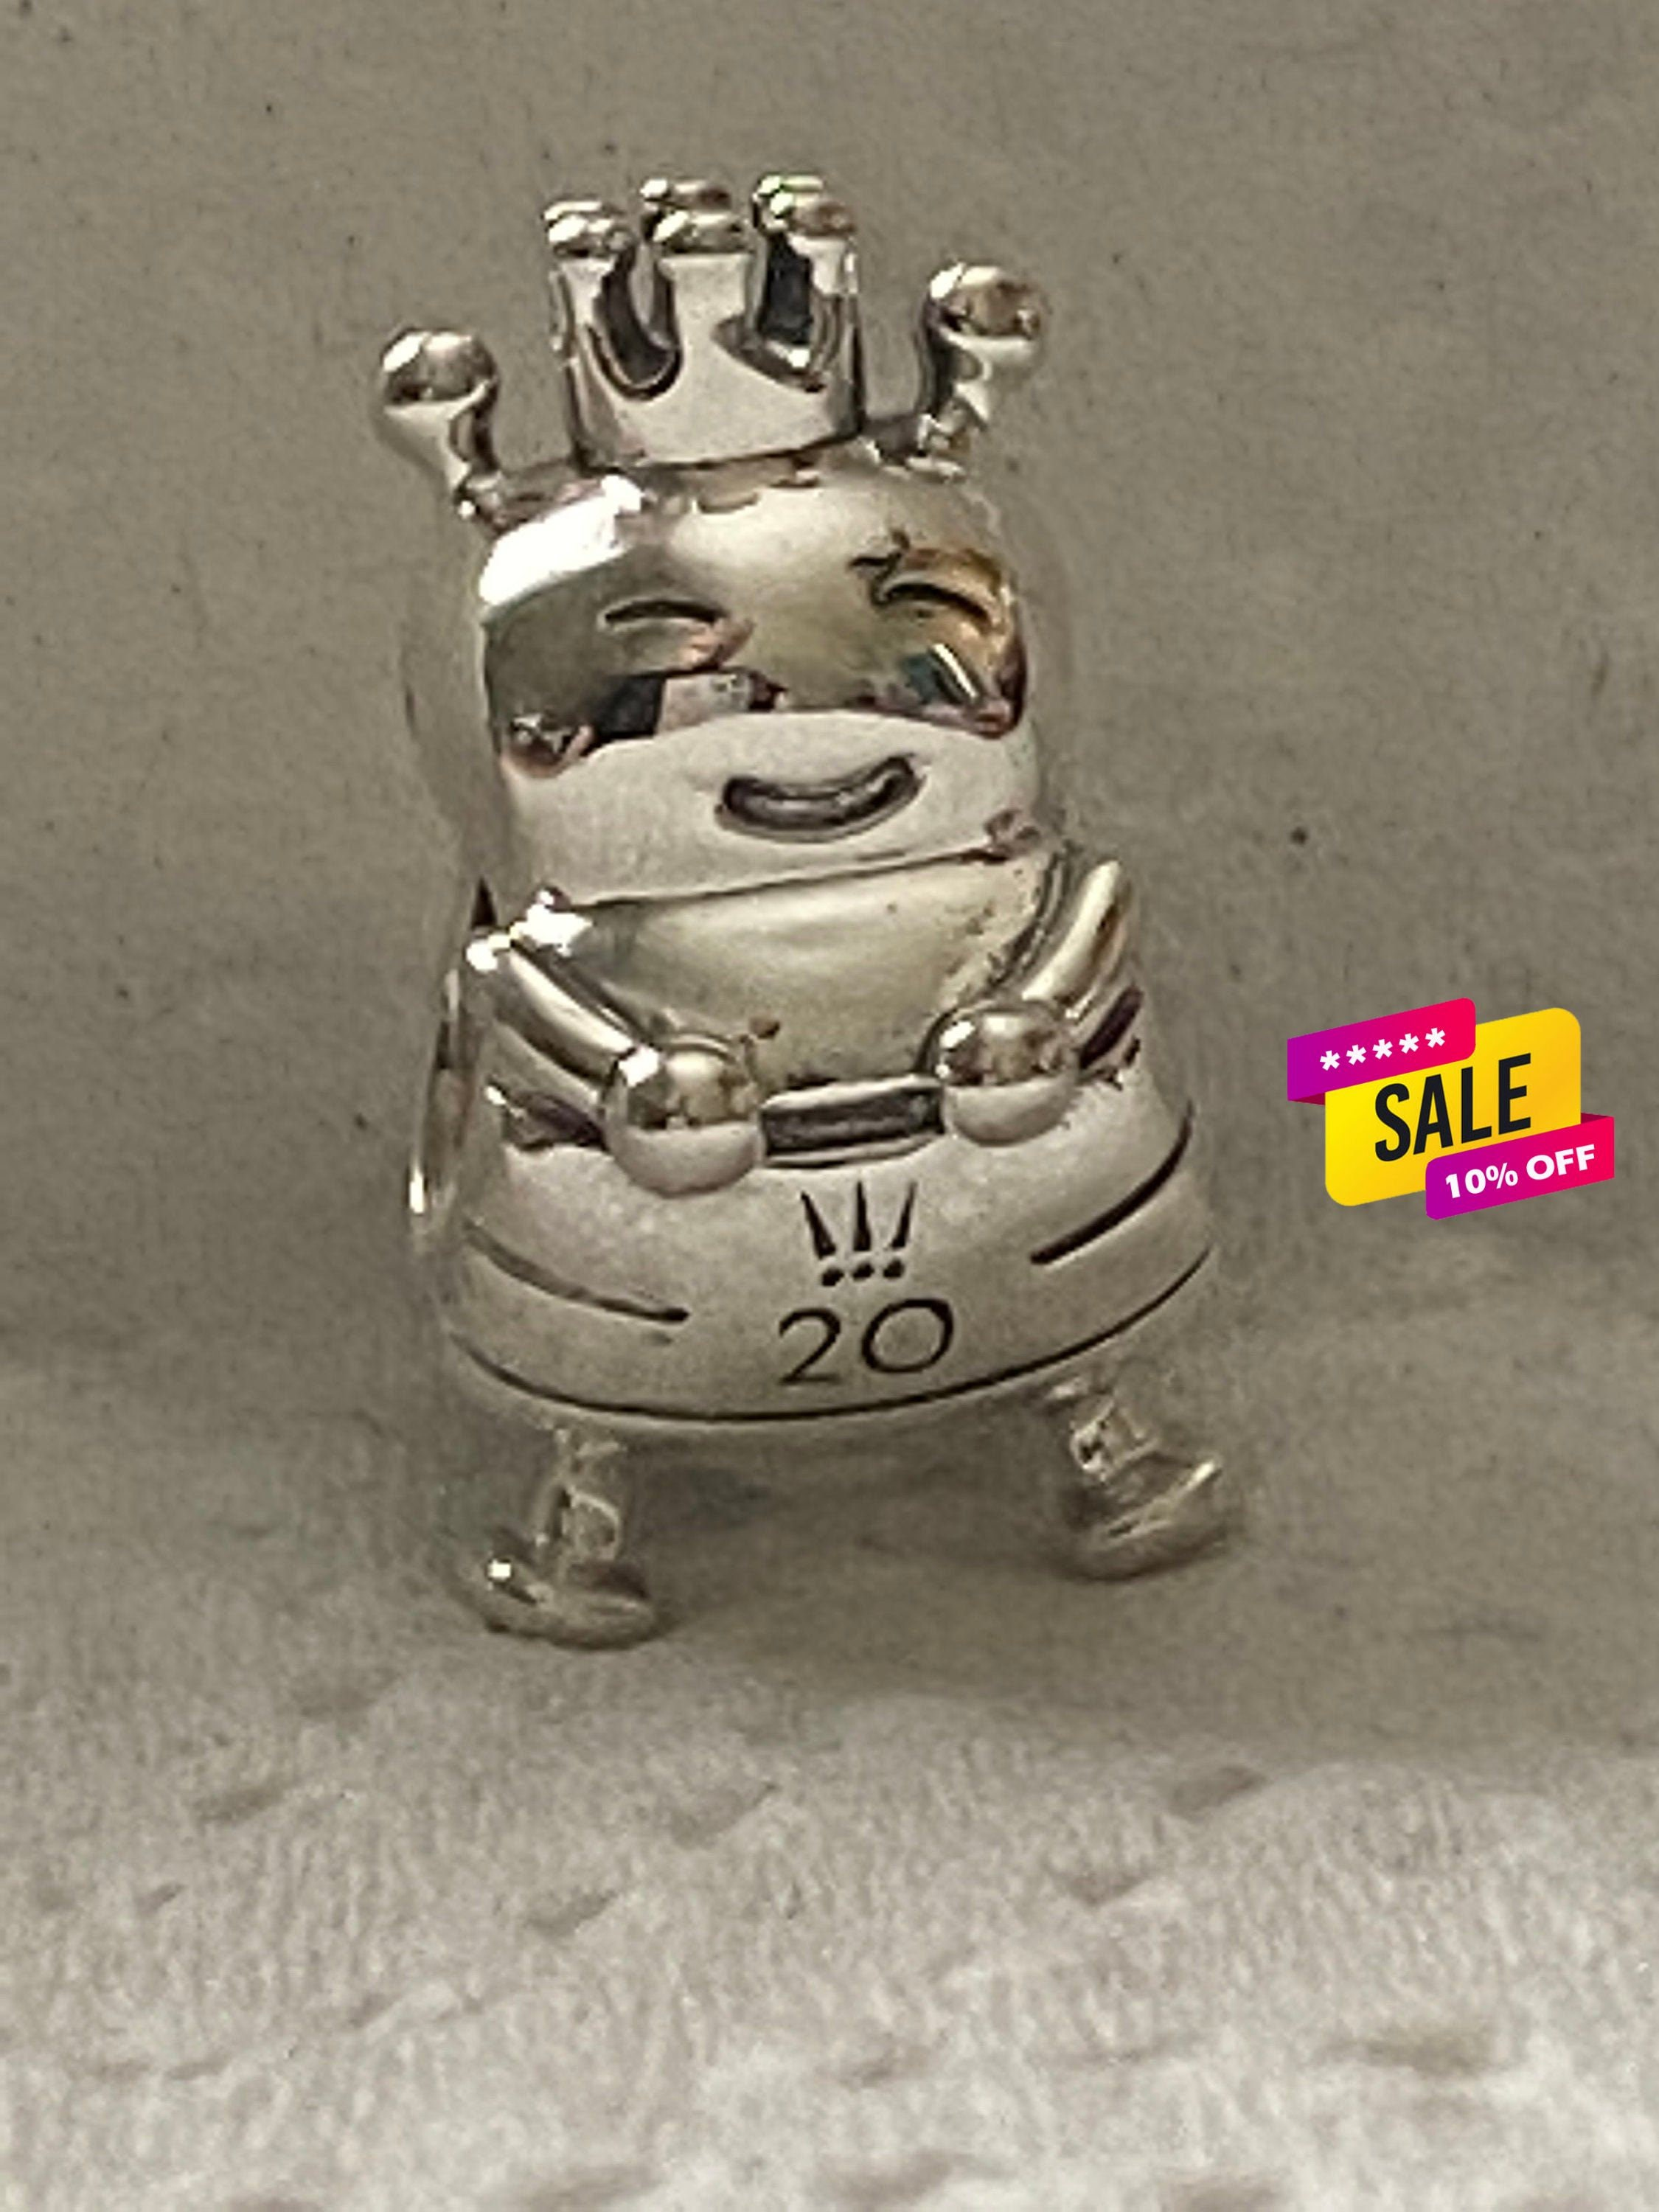 Pandora Charms, Queen Bee 2020 Charm, Limited Edition, Insect Charms,